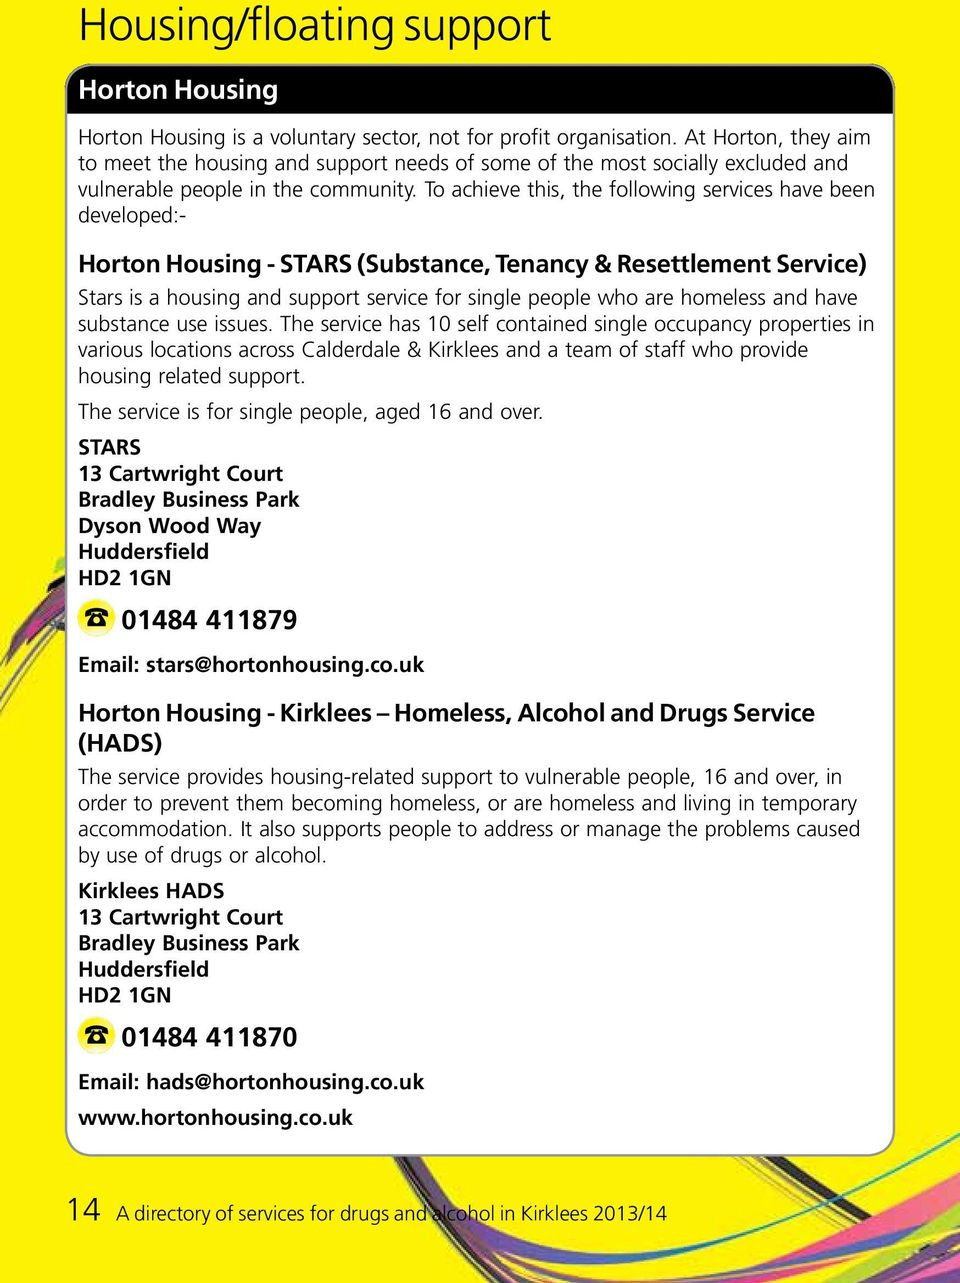 To achieve this, the following services have been developed:- Horton Housing - STARS (Substance, Tenancy & Resettlement Service) Stars is a housing and support service for single people who are